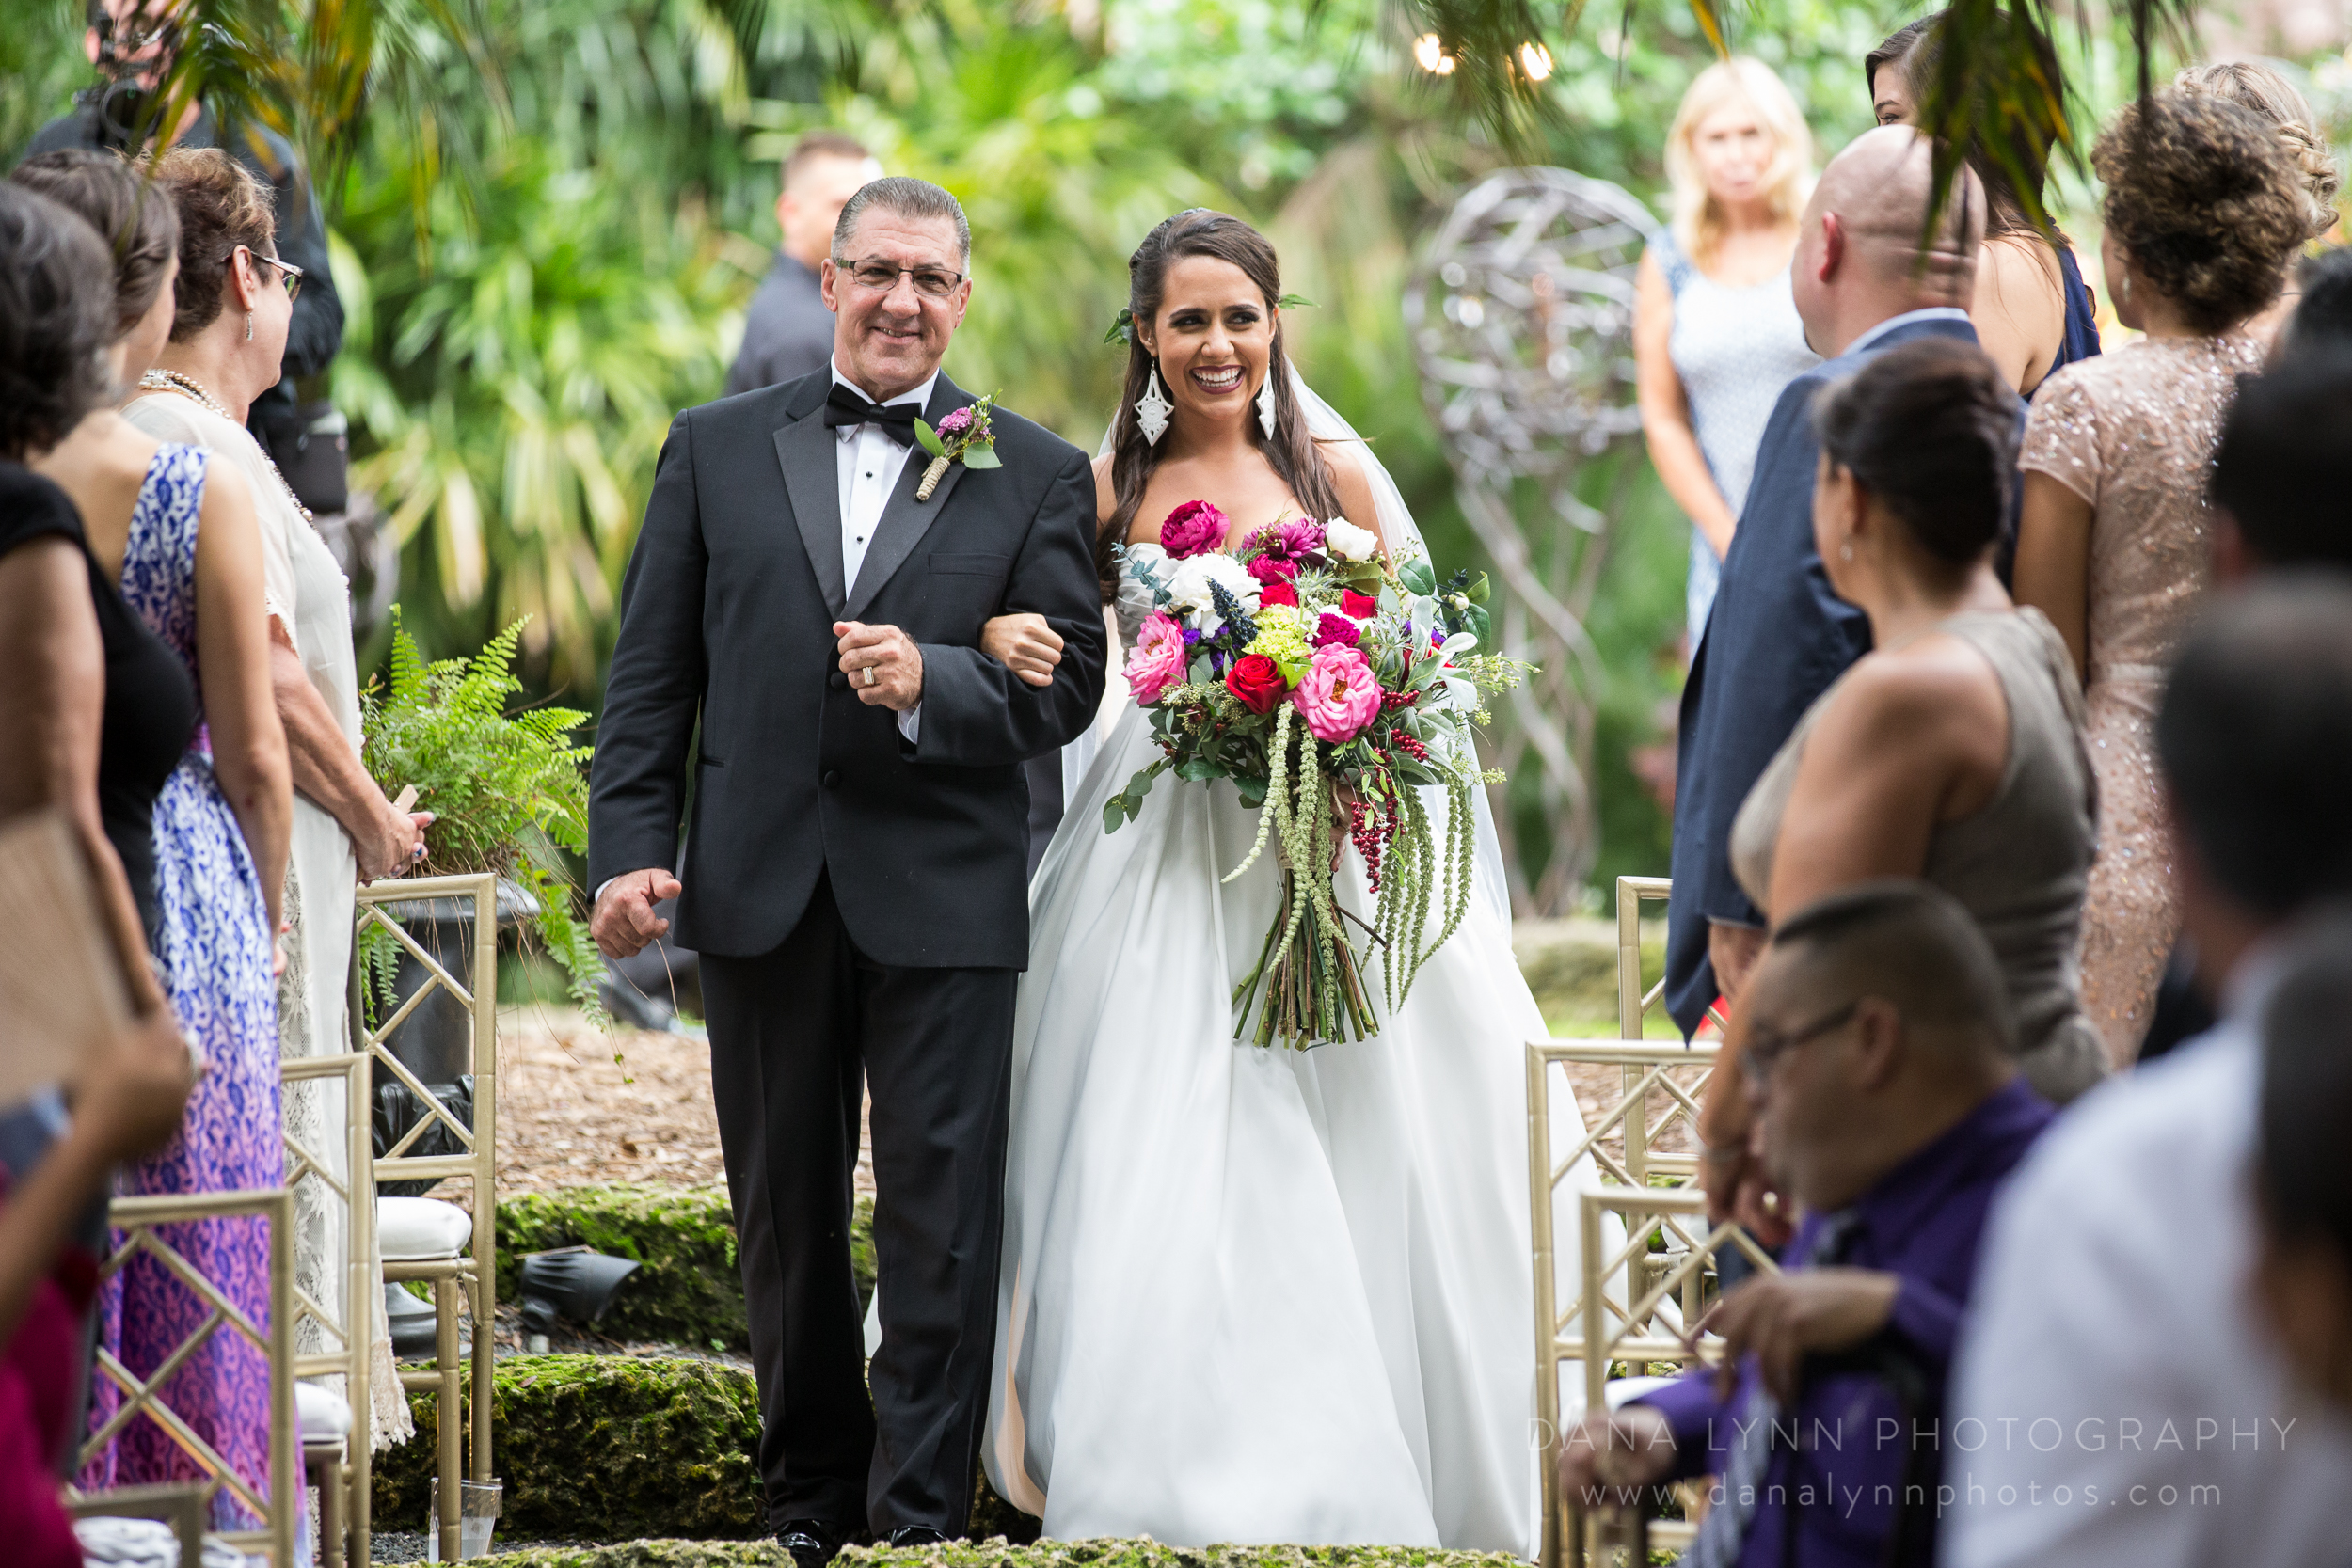 Wedding Photography by Dana Lynn Photography at The Cooper Estate in Miami, FL